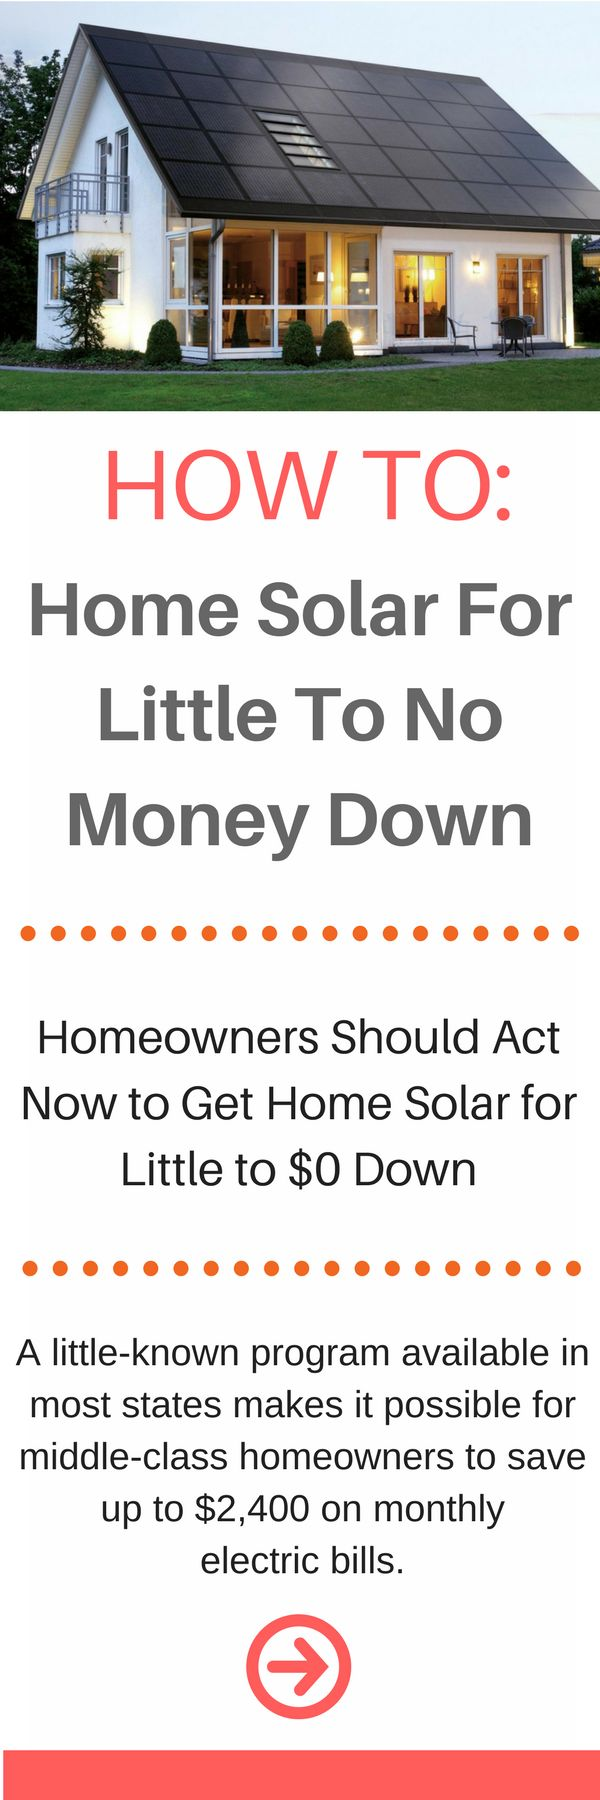 I've found that not a lot of people know that they can switch to solar energy and actually save money. It's quite common to be able to get the solar panels for no money down. However, you must be a homeowner.